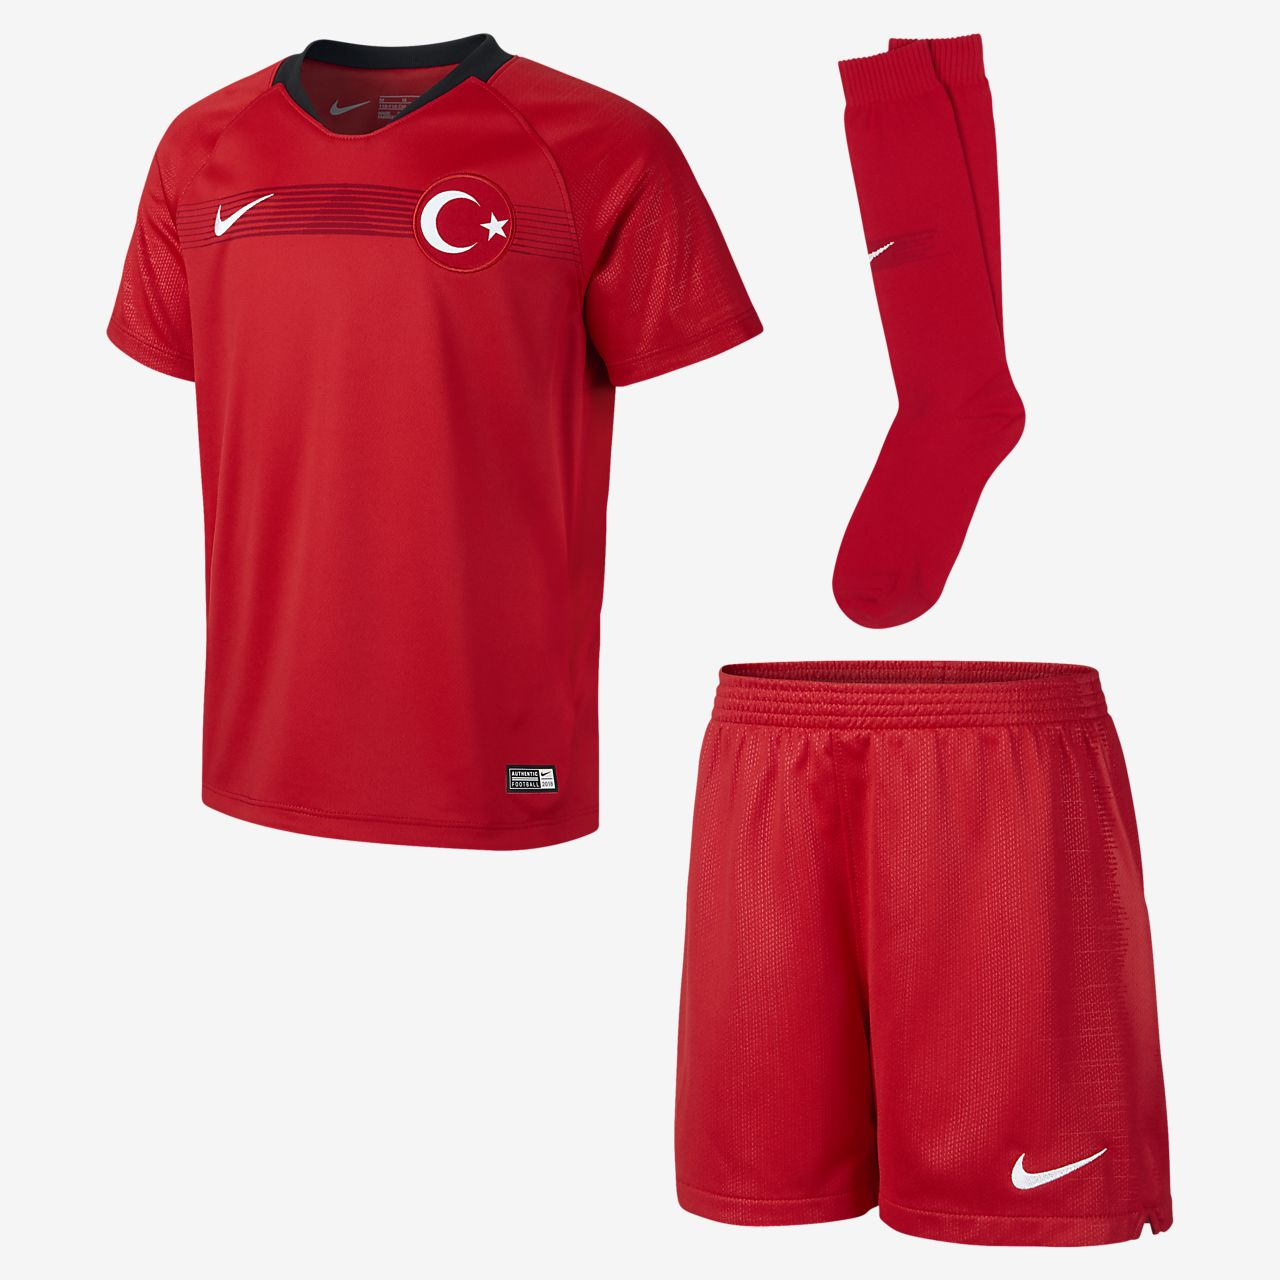 Tenue de football 2018 Turkey Stadium Home pour Jeune enfant